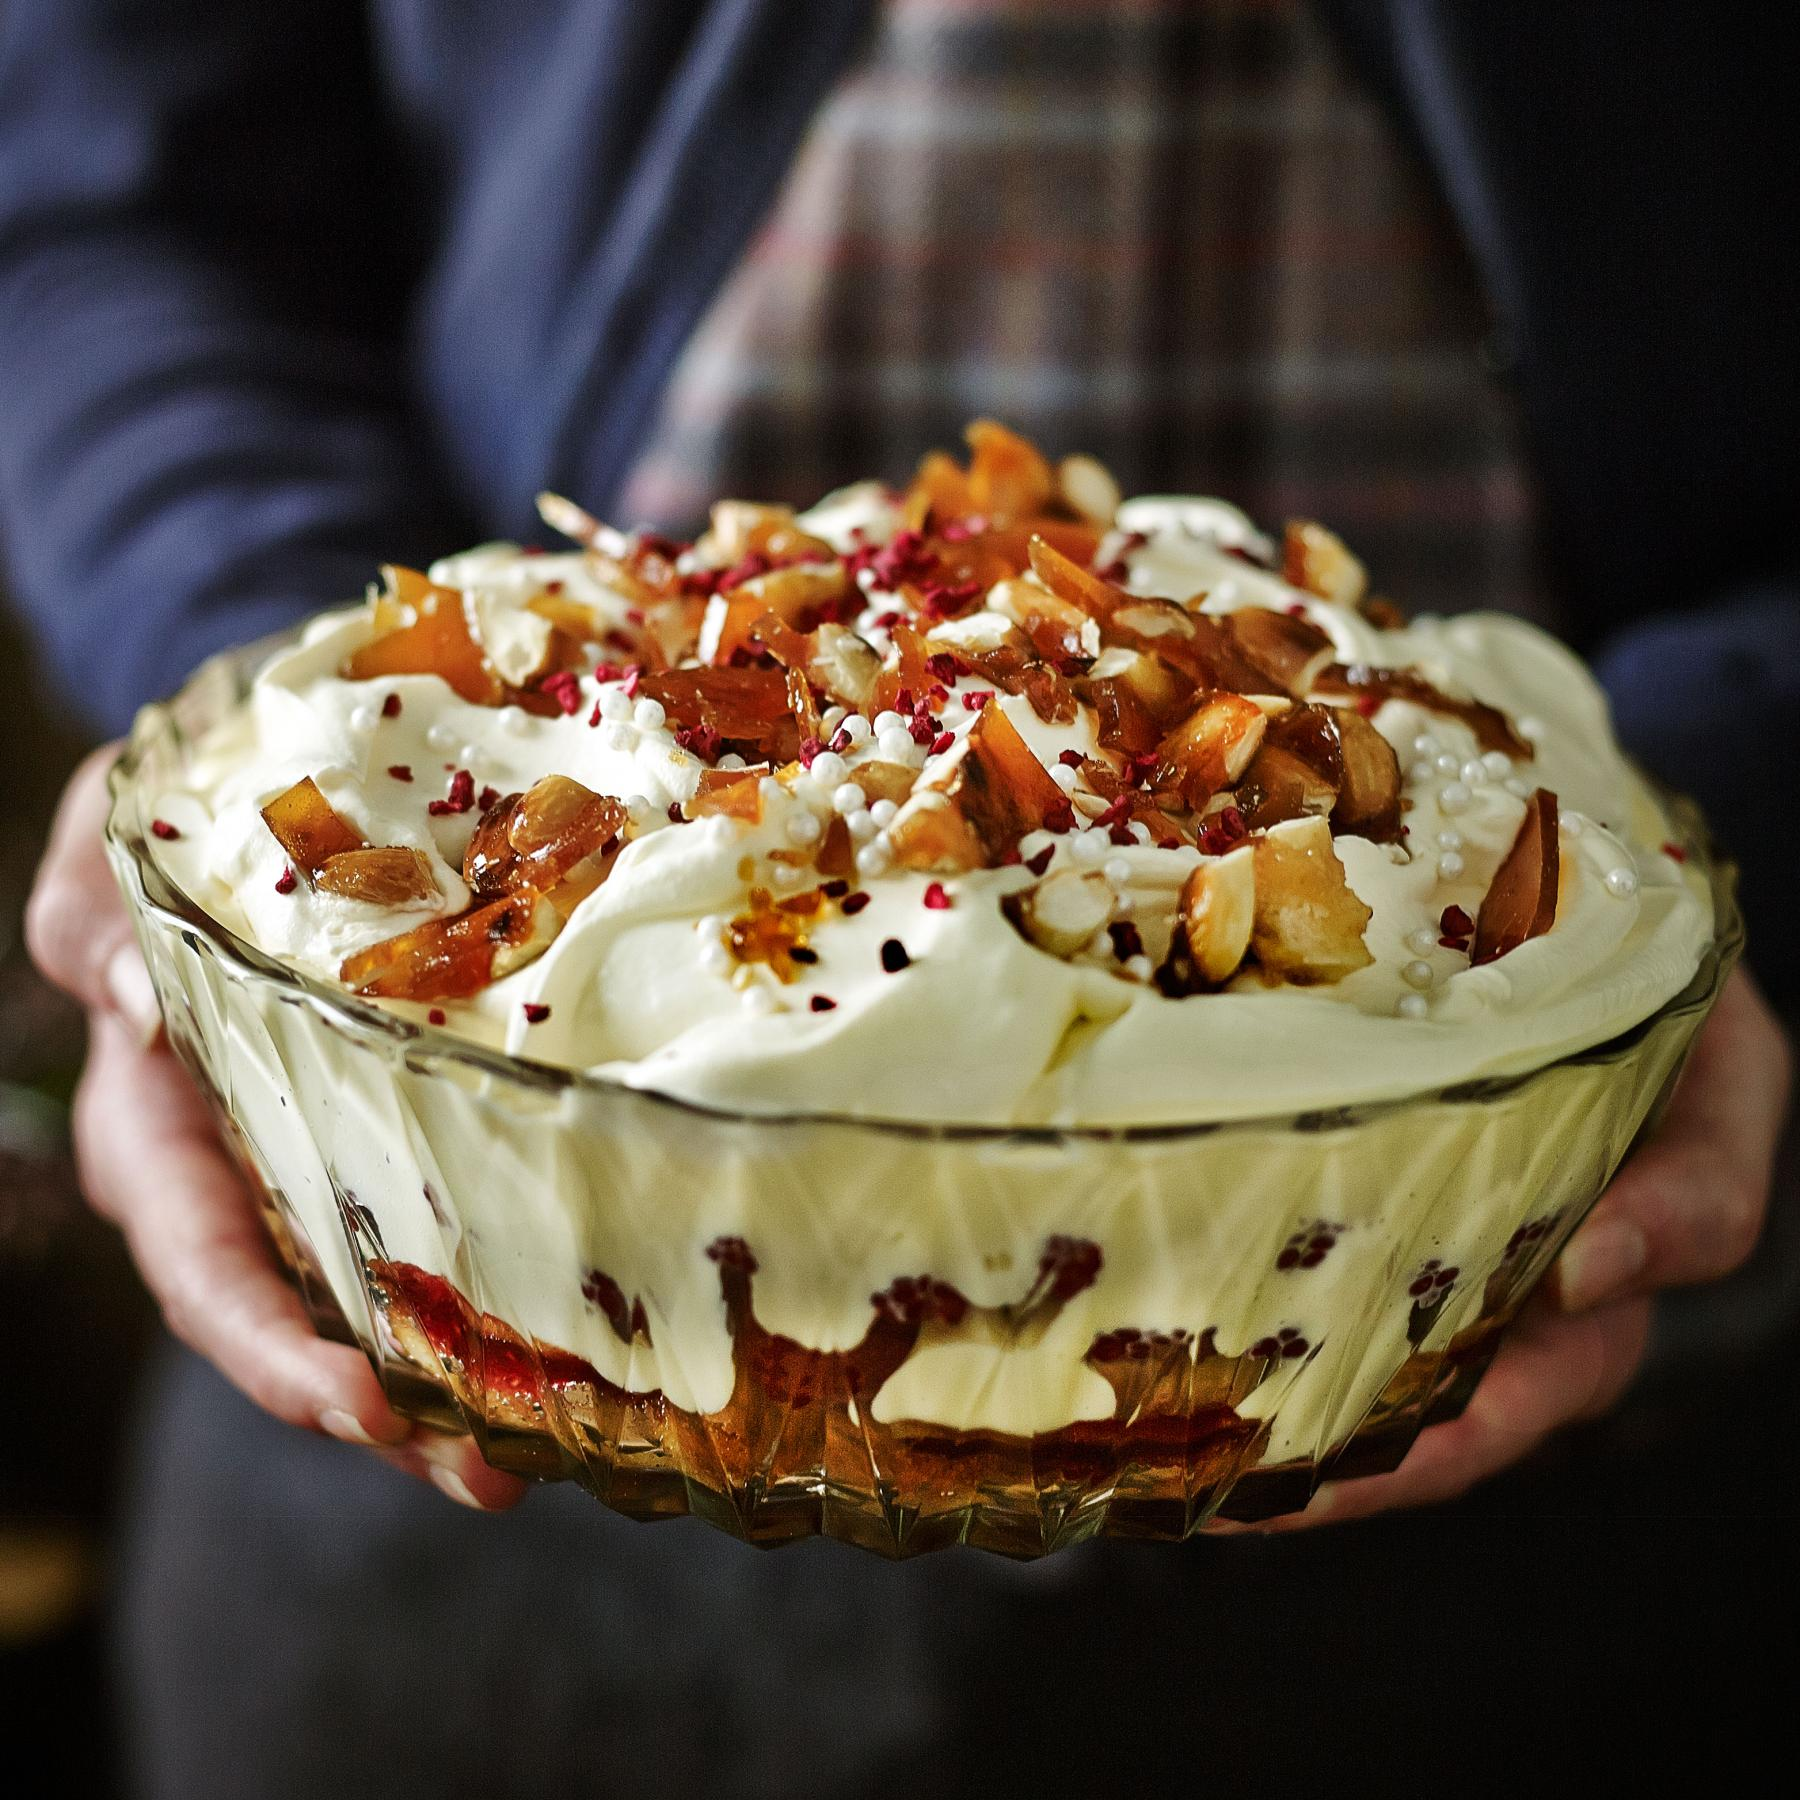 Raspberry And Amaretto Trifle With Salted Caramelised Almonds